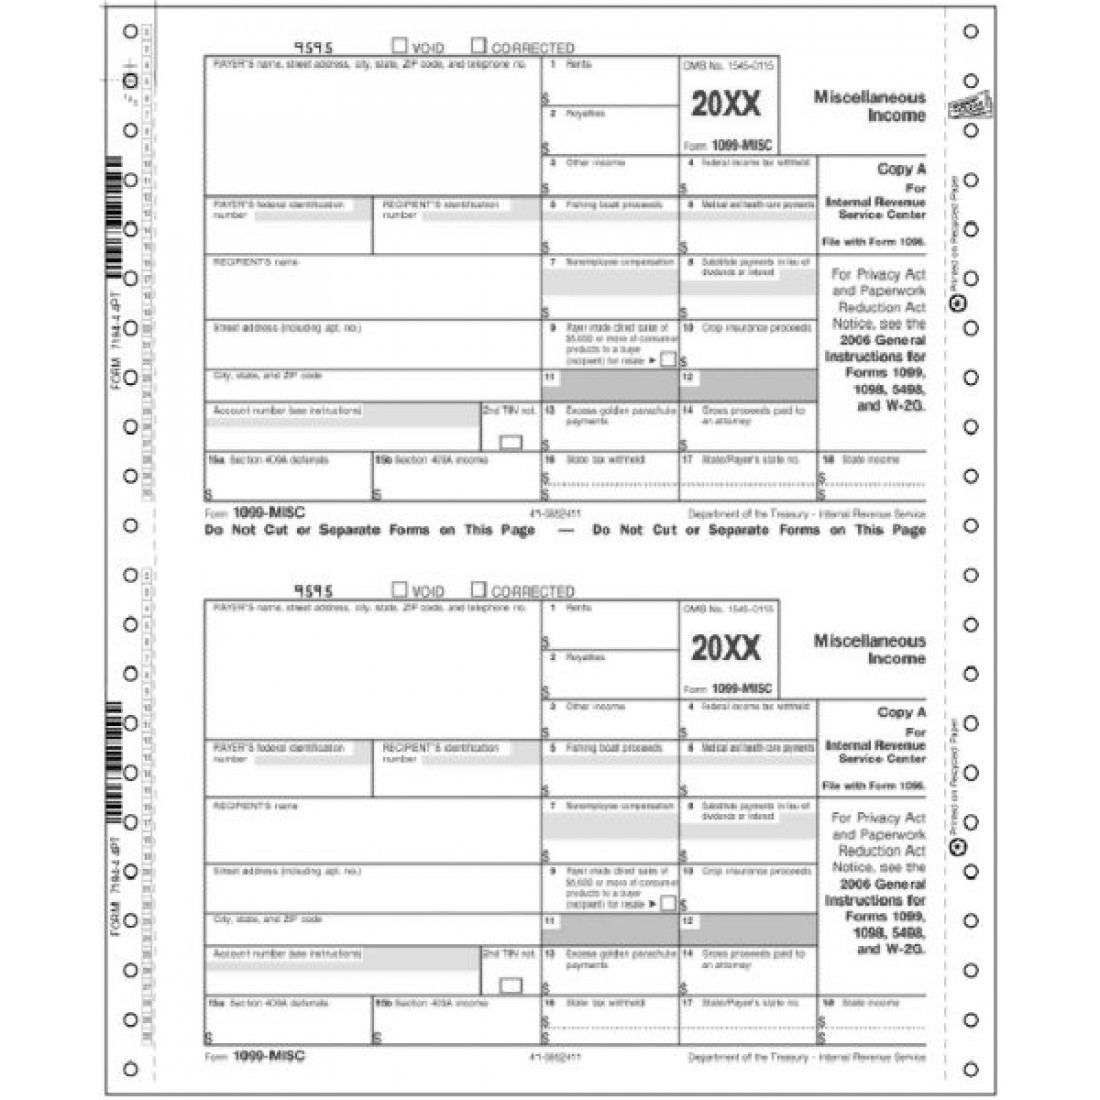 Continuous Misc Irs Tax Forms